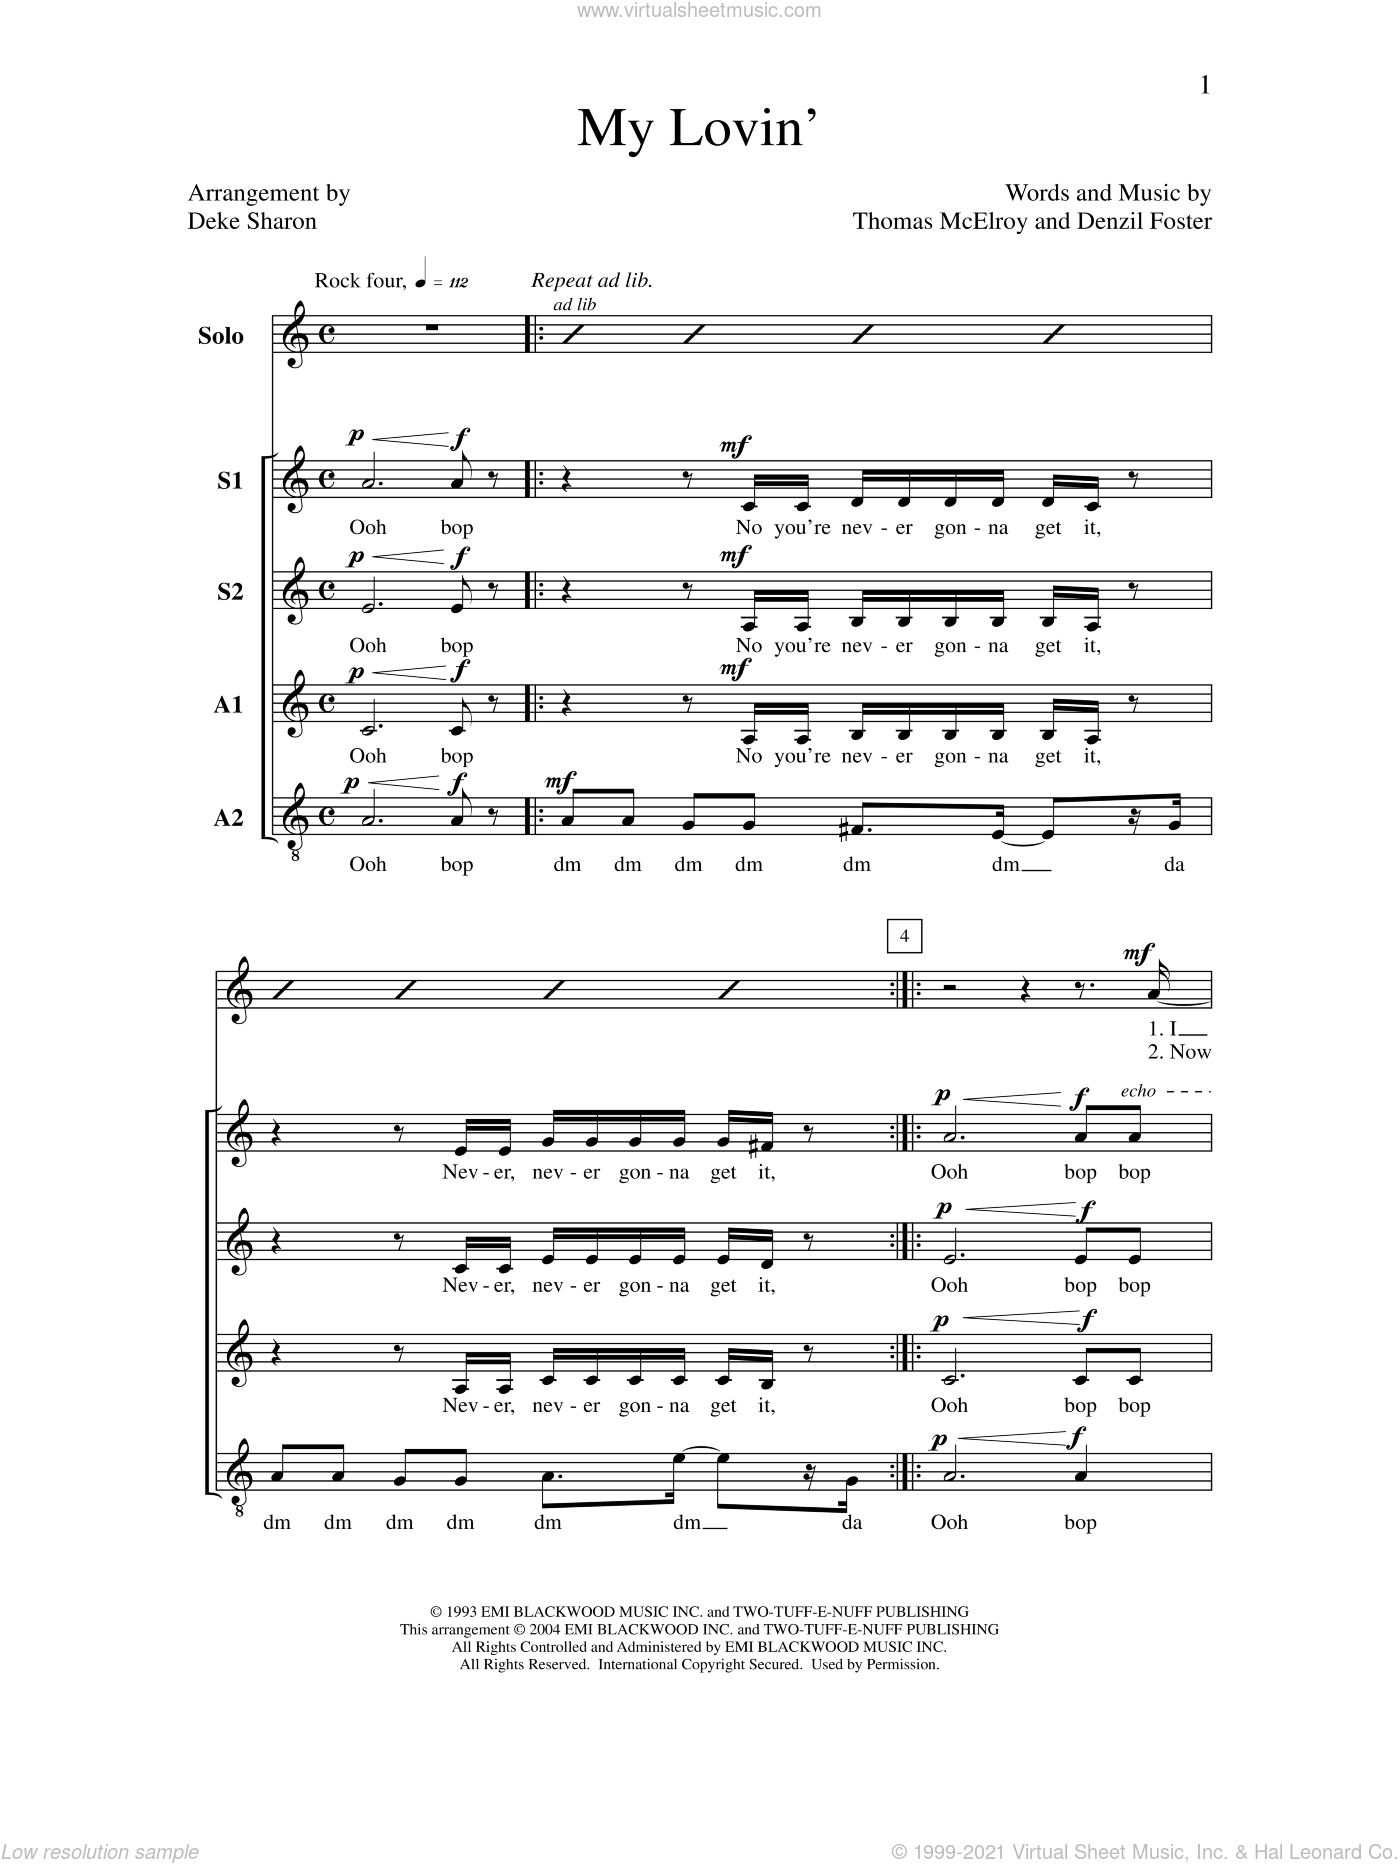 My Lovin' sheet music for choir by Deke Sharon, Anne Raugh, Denzil Foster, En Vogue and Thomas McElroy, intermediate